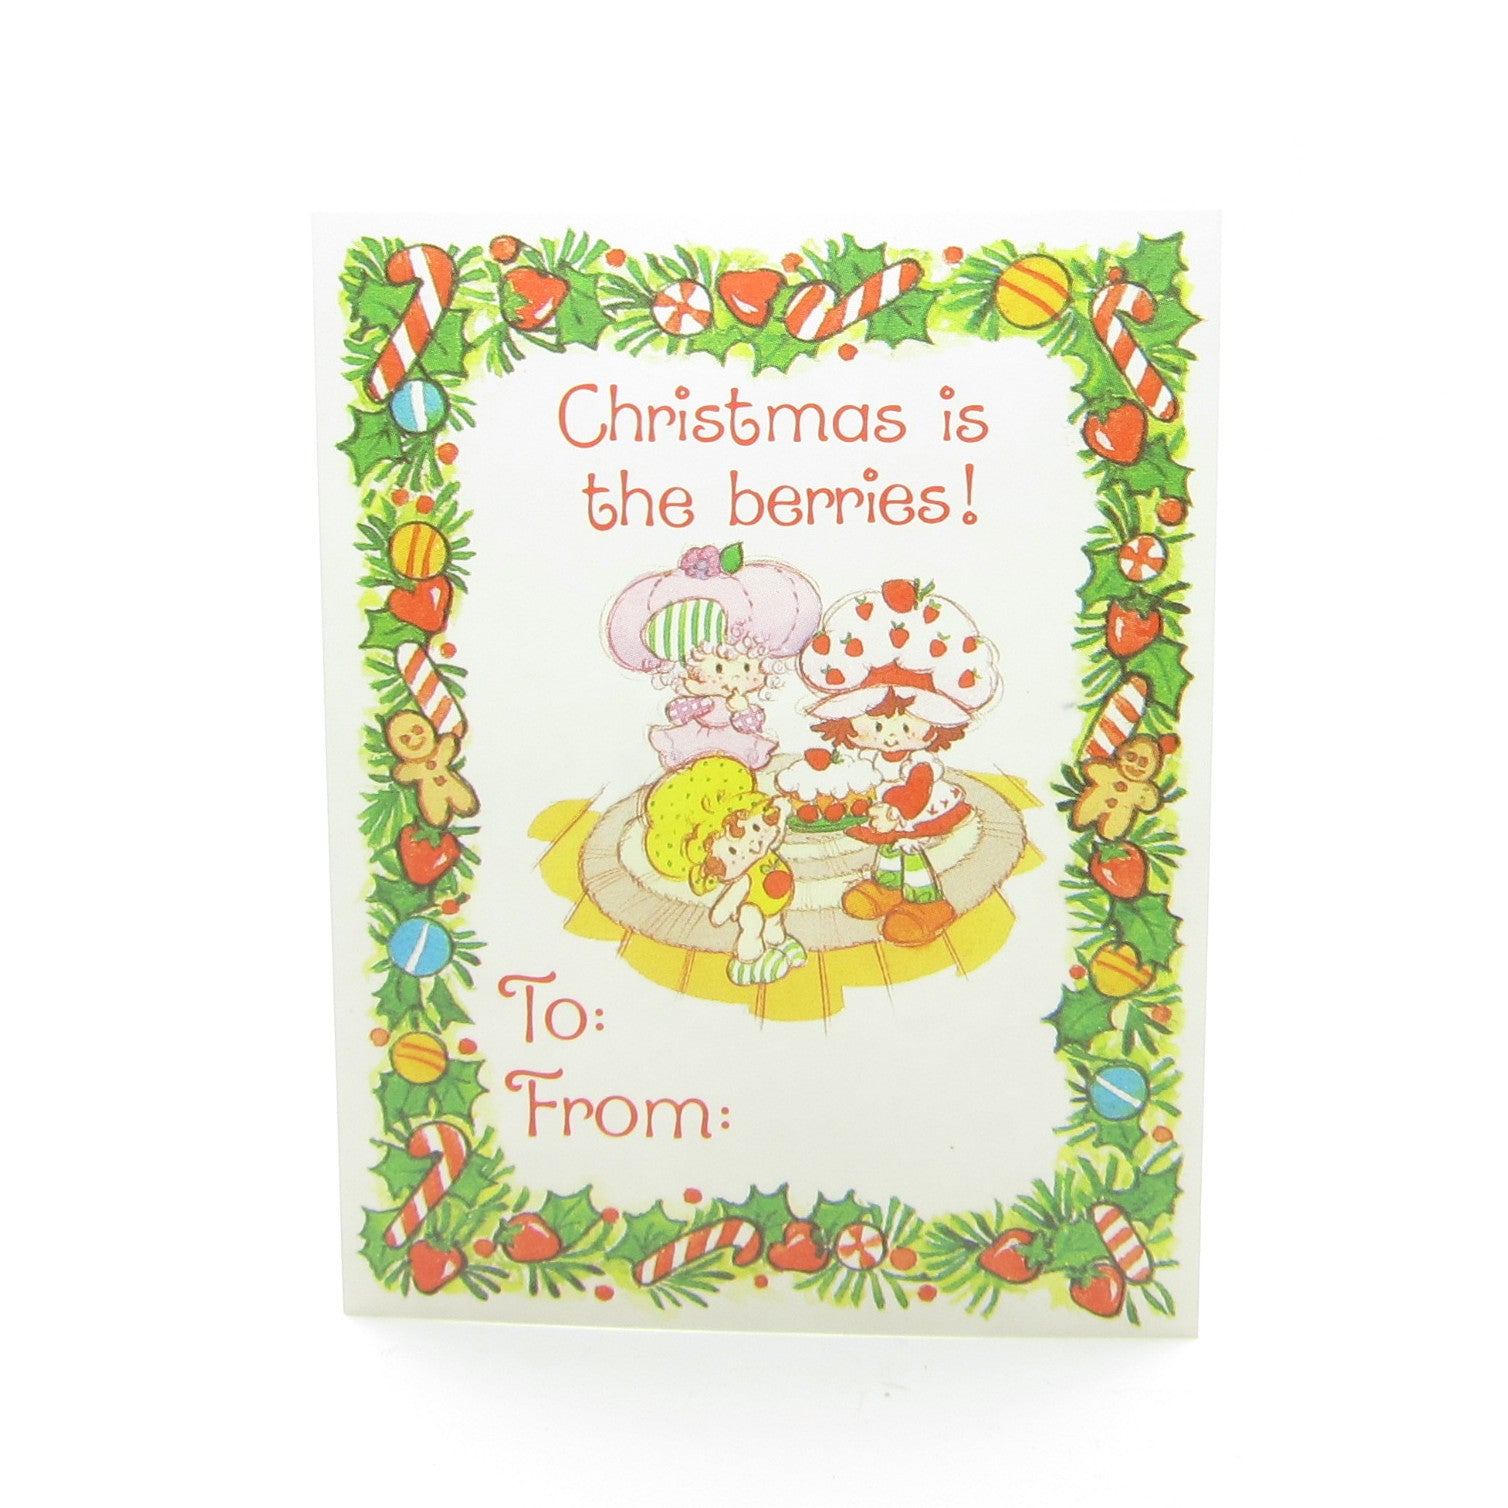 Christmas is the berries Strawberry Shortcake gift tag